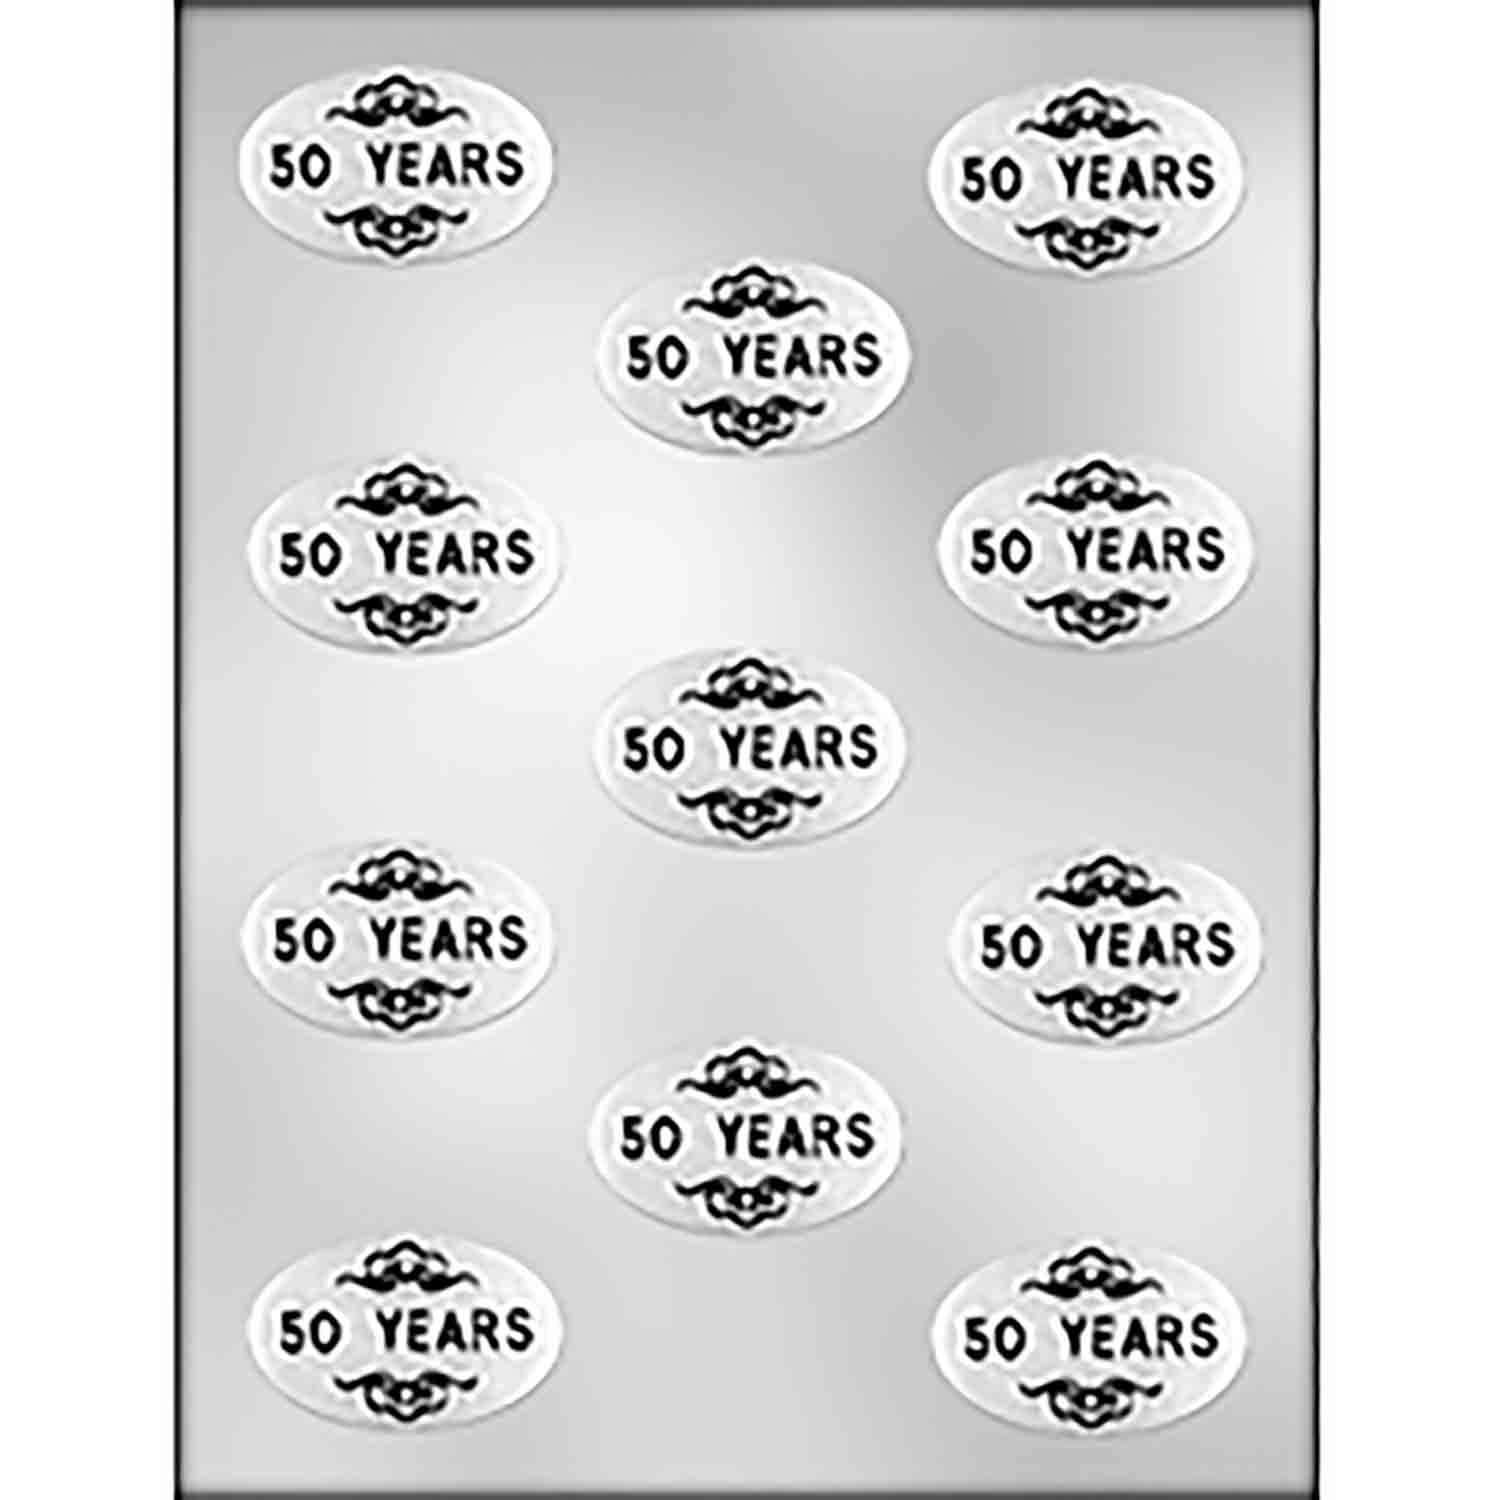 """50 YEARS"" on Oval Chocolate Candy Mold"